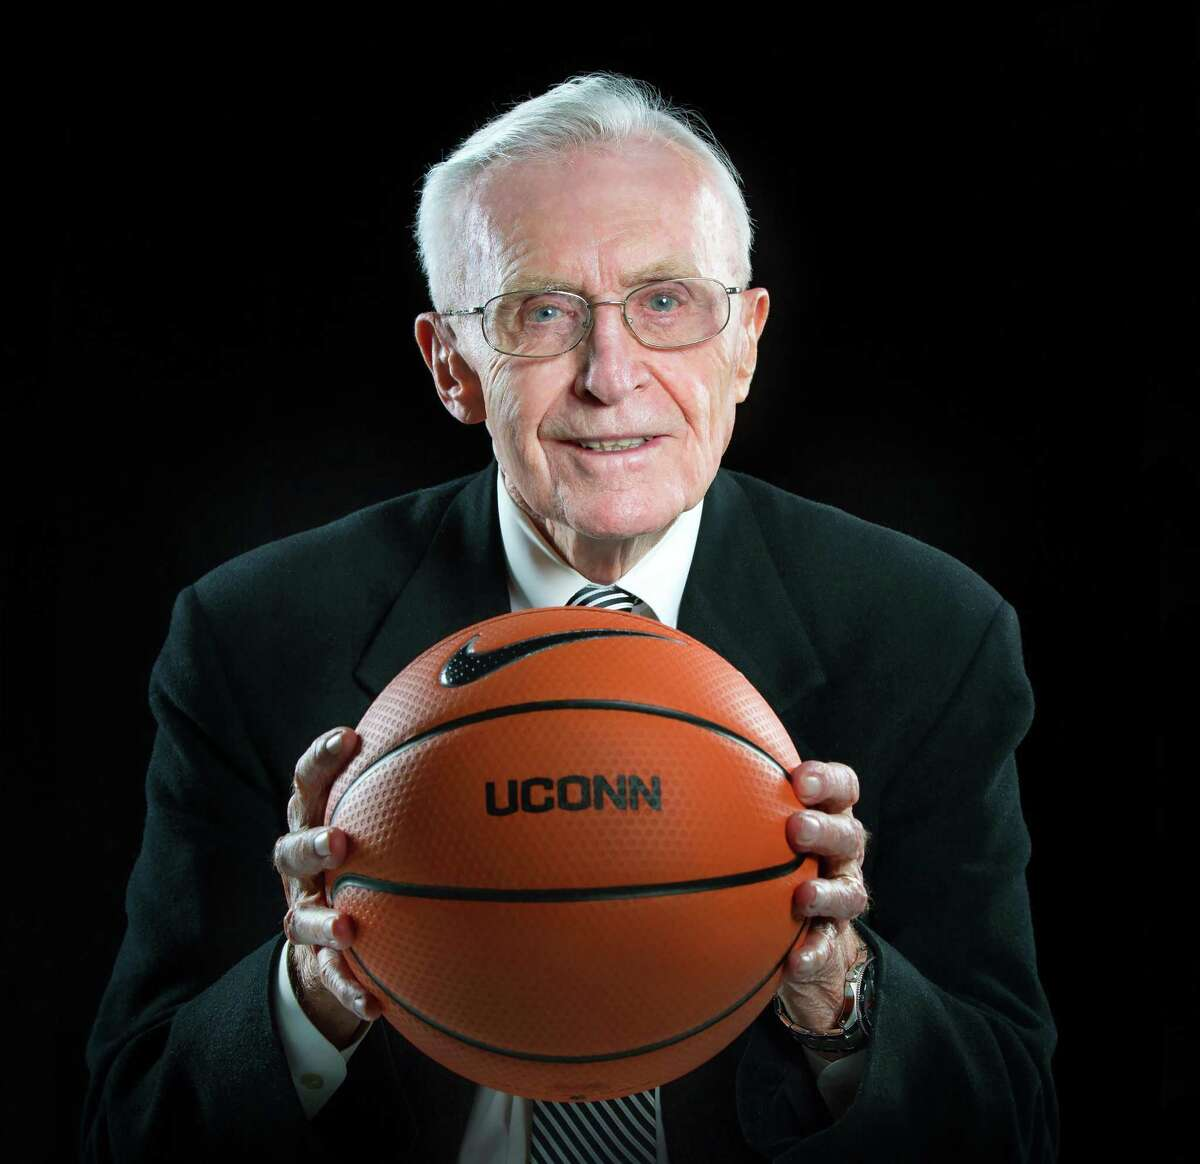 Dee Rowe, the former UConn men's basketball coach who has been an ambassador for the school's athletics program for more than 50 years died Sunday. He was 91.